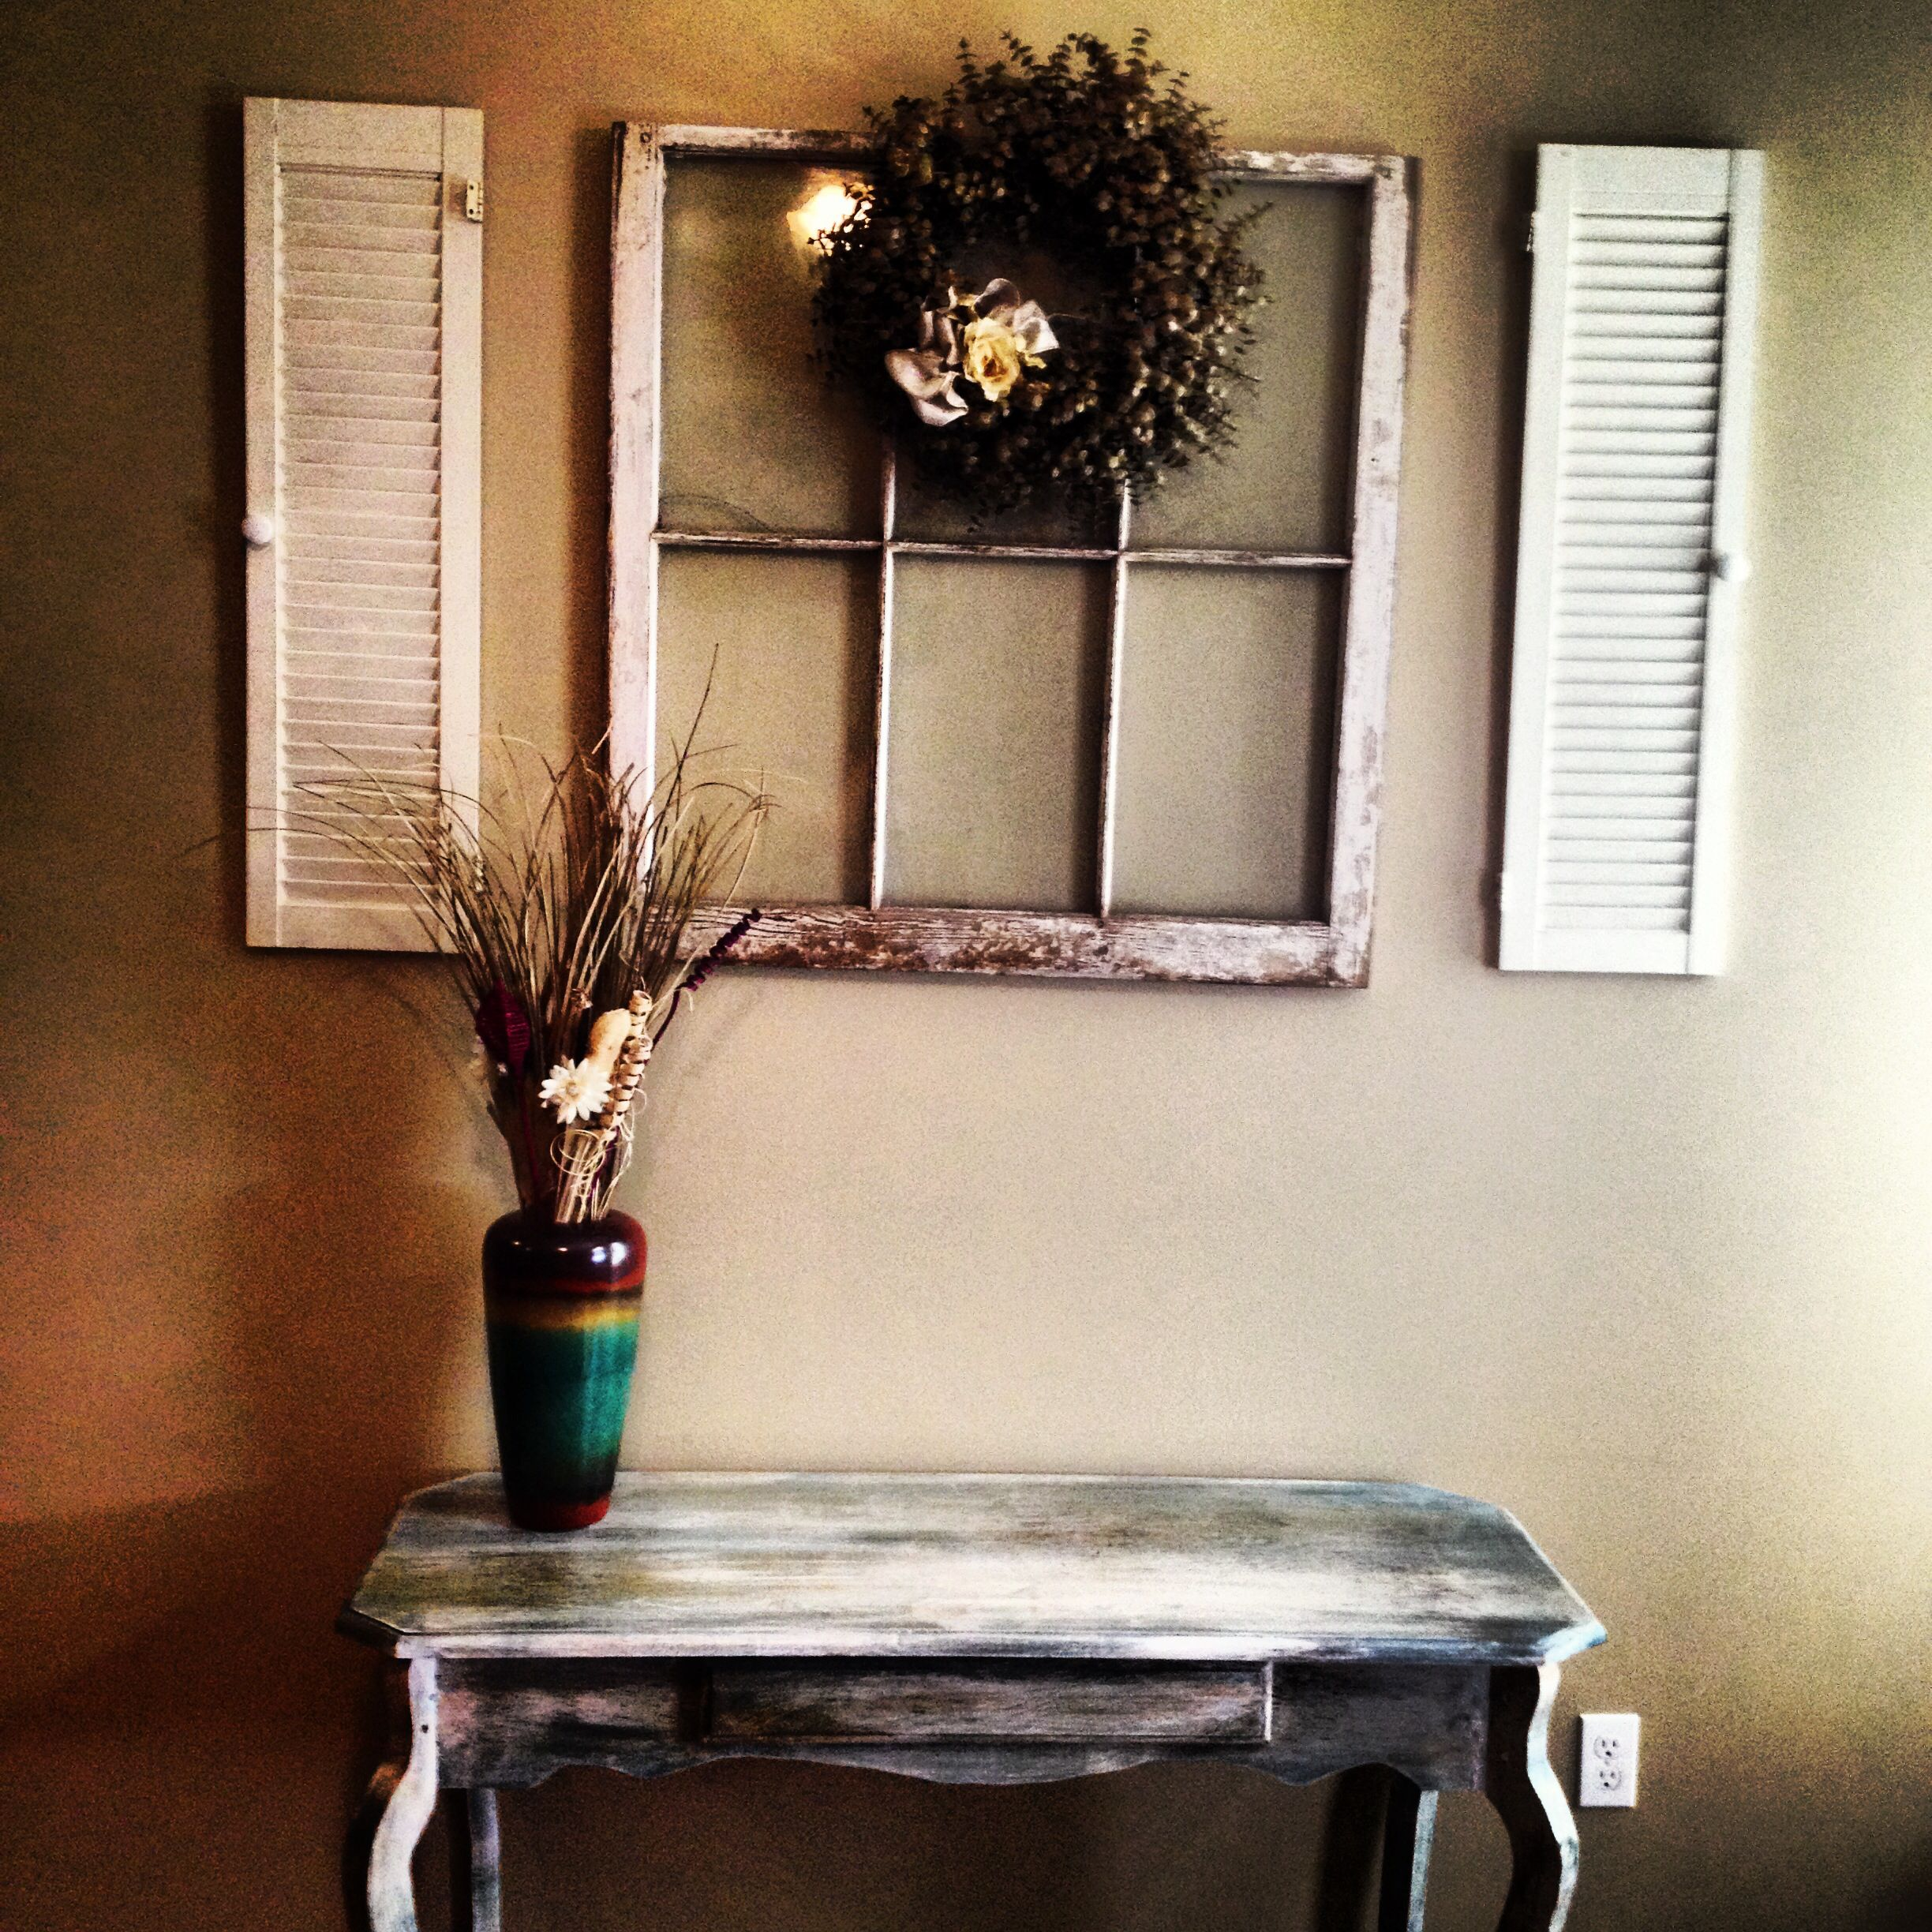 Pin By Kelly Blackledge On Home Sweet Home Shutters Repurposed Decor Repurposed Windows Old Window Decor